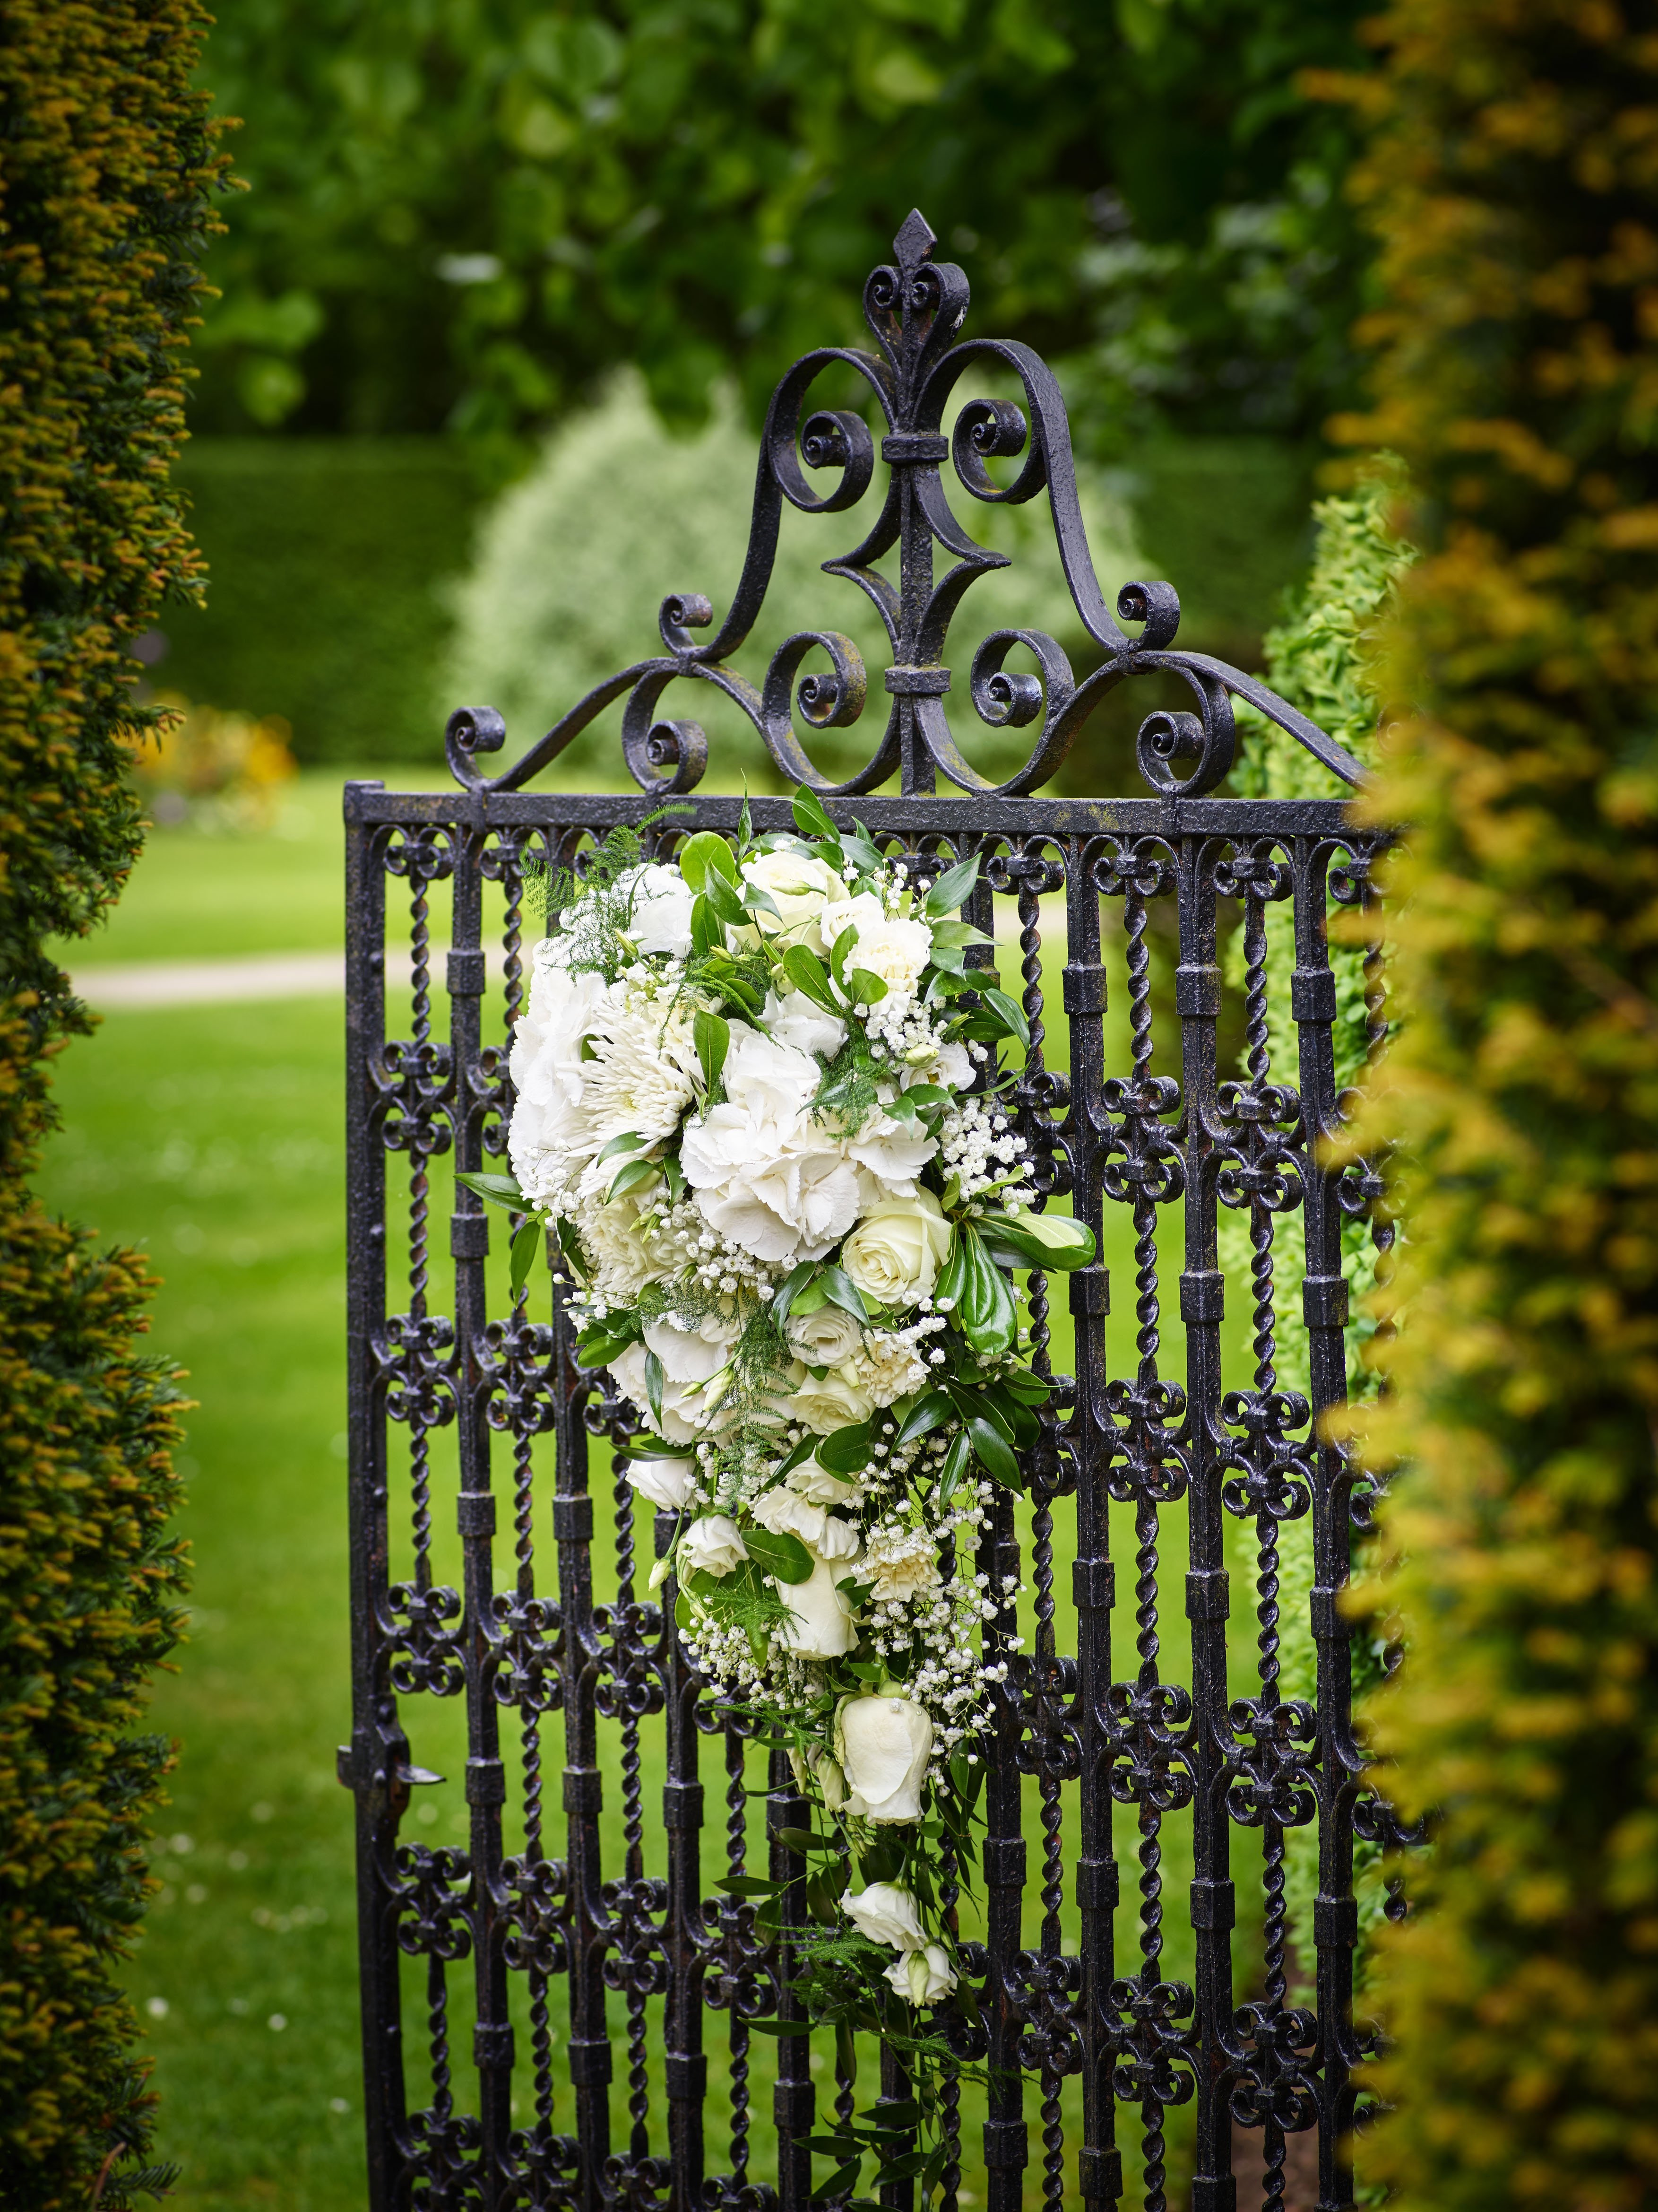 flowers hung on the gate